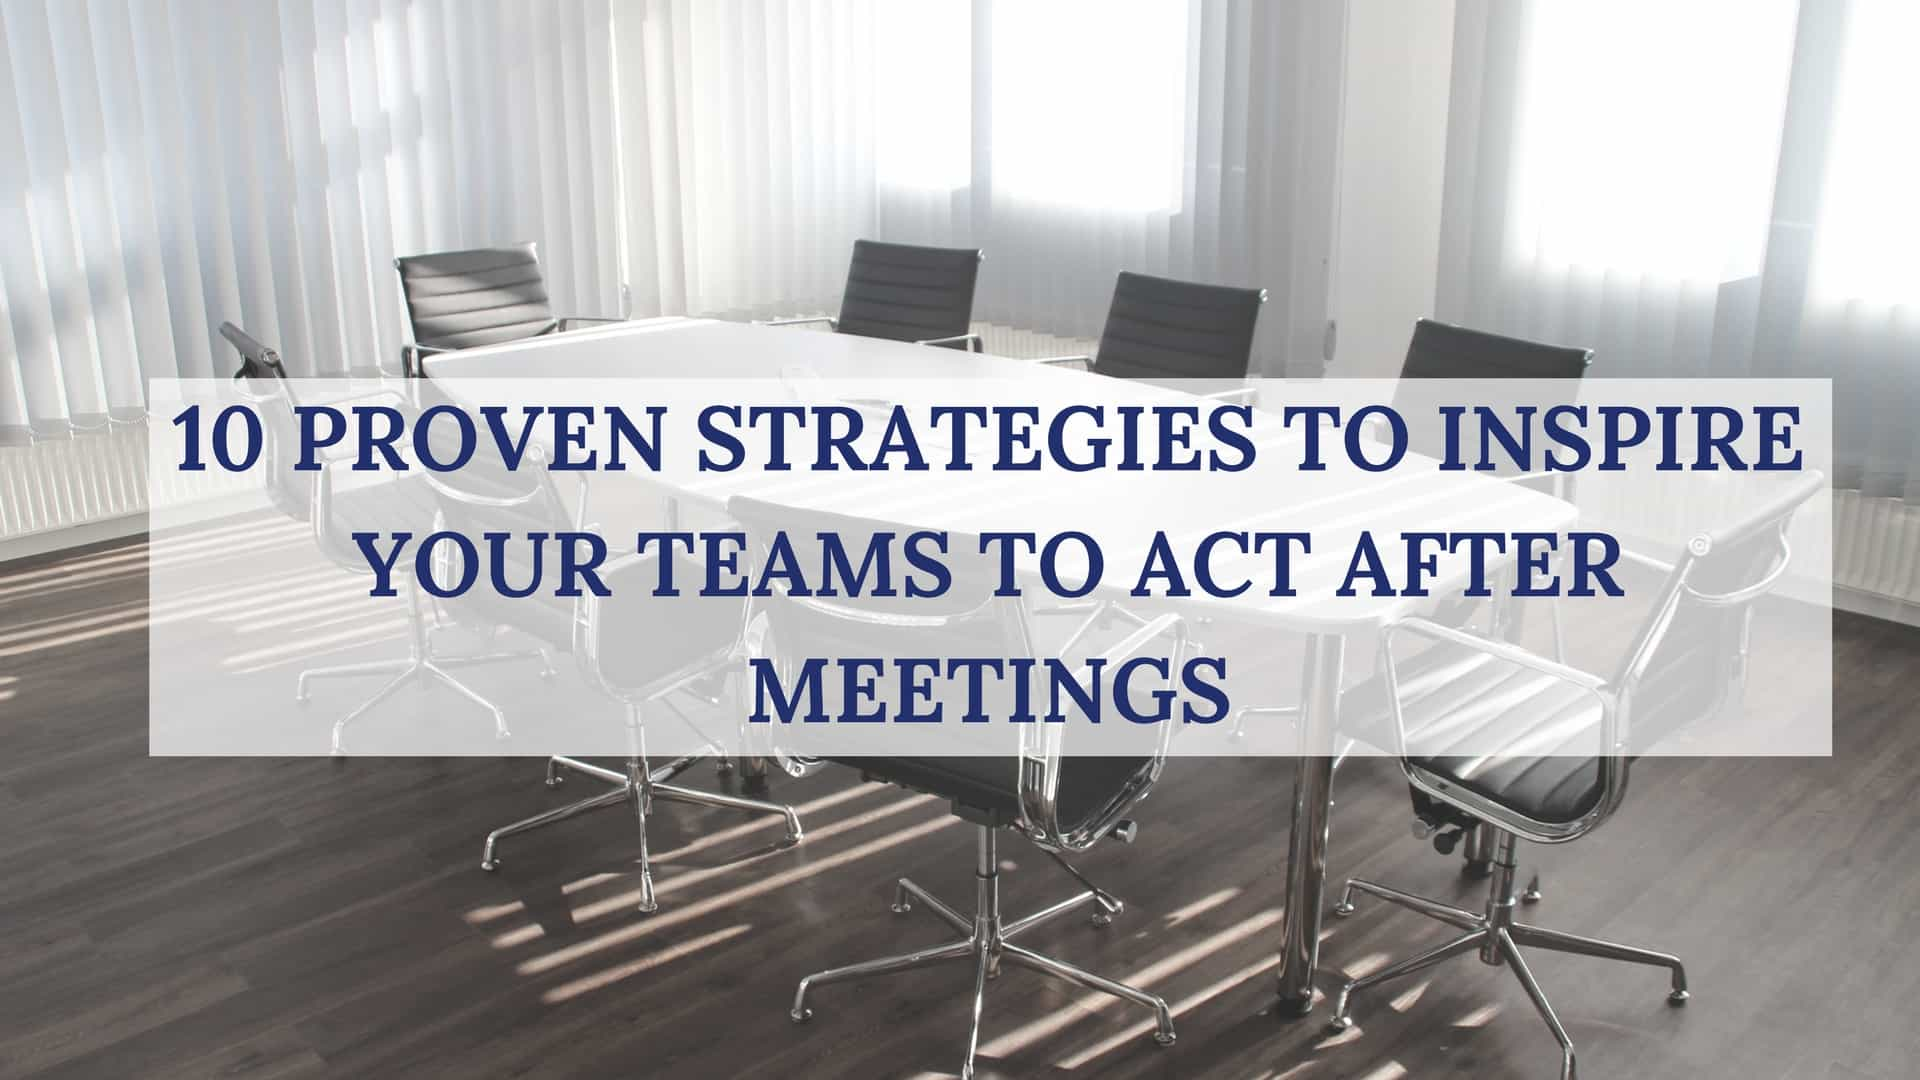 10 proven strategies to inspire your teams to act after meetings